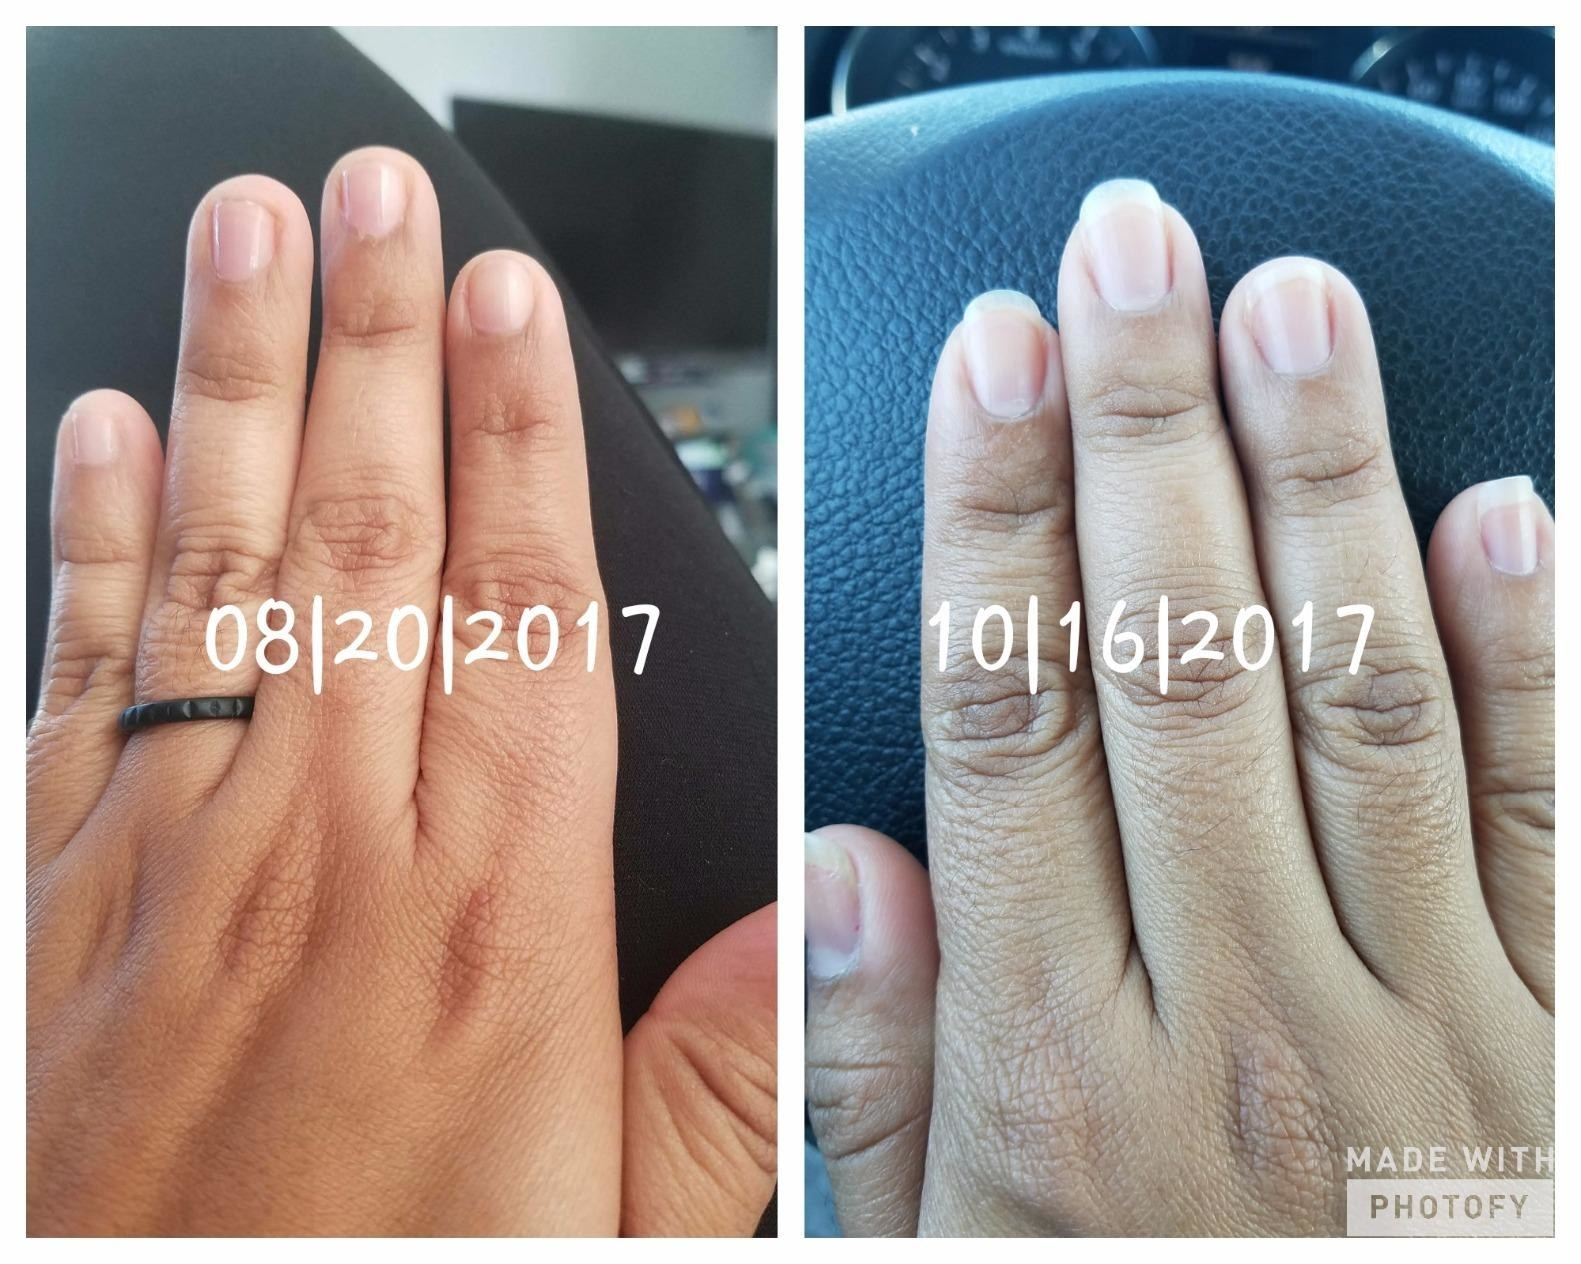 A reviewer's hand in two photos: one with short, bitten-down nails dates 8/20/2017 and one with longer, healthy-looking nails dated 10/16/2017